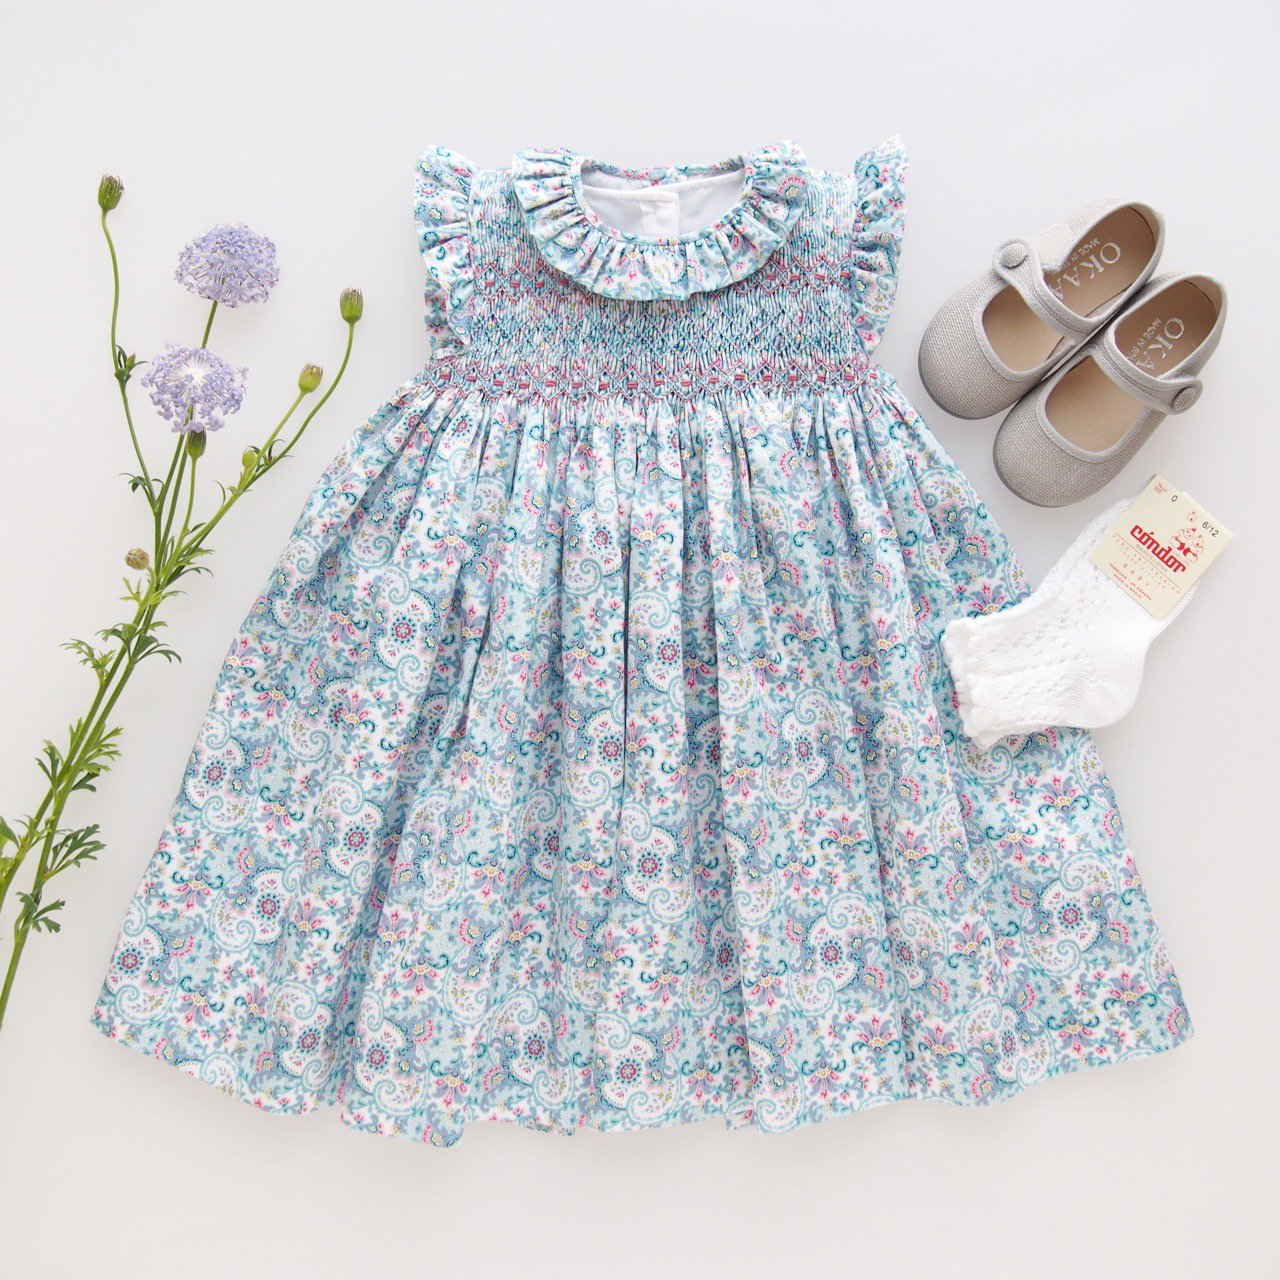 <img class='new_mark_img1' src='https://img.shop-pro.jp/img/new/icons1.gif' style='border:none;display:inline;margin:0px;padding:0px;width:auto;' />Aruca - Paisley smocked dress